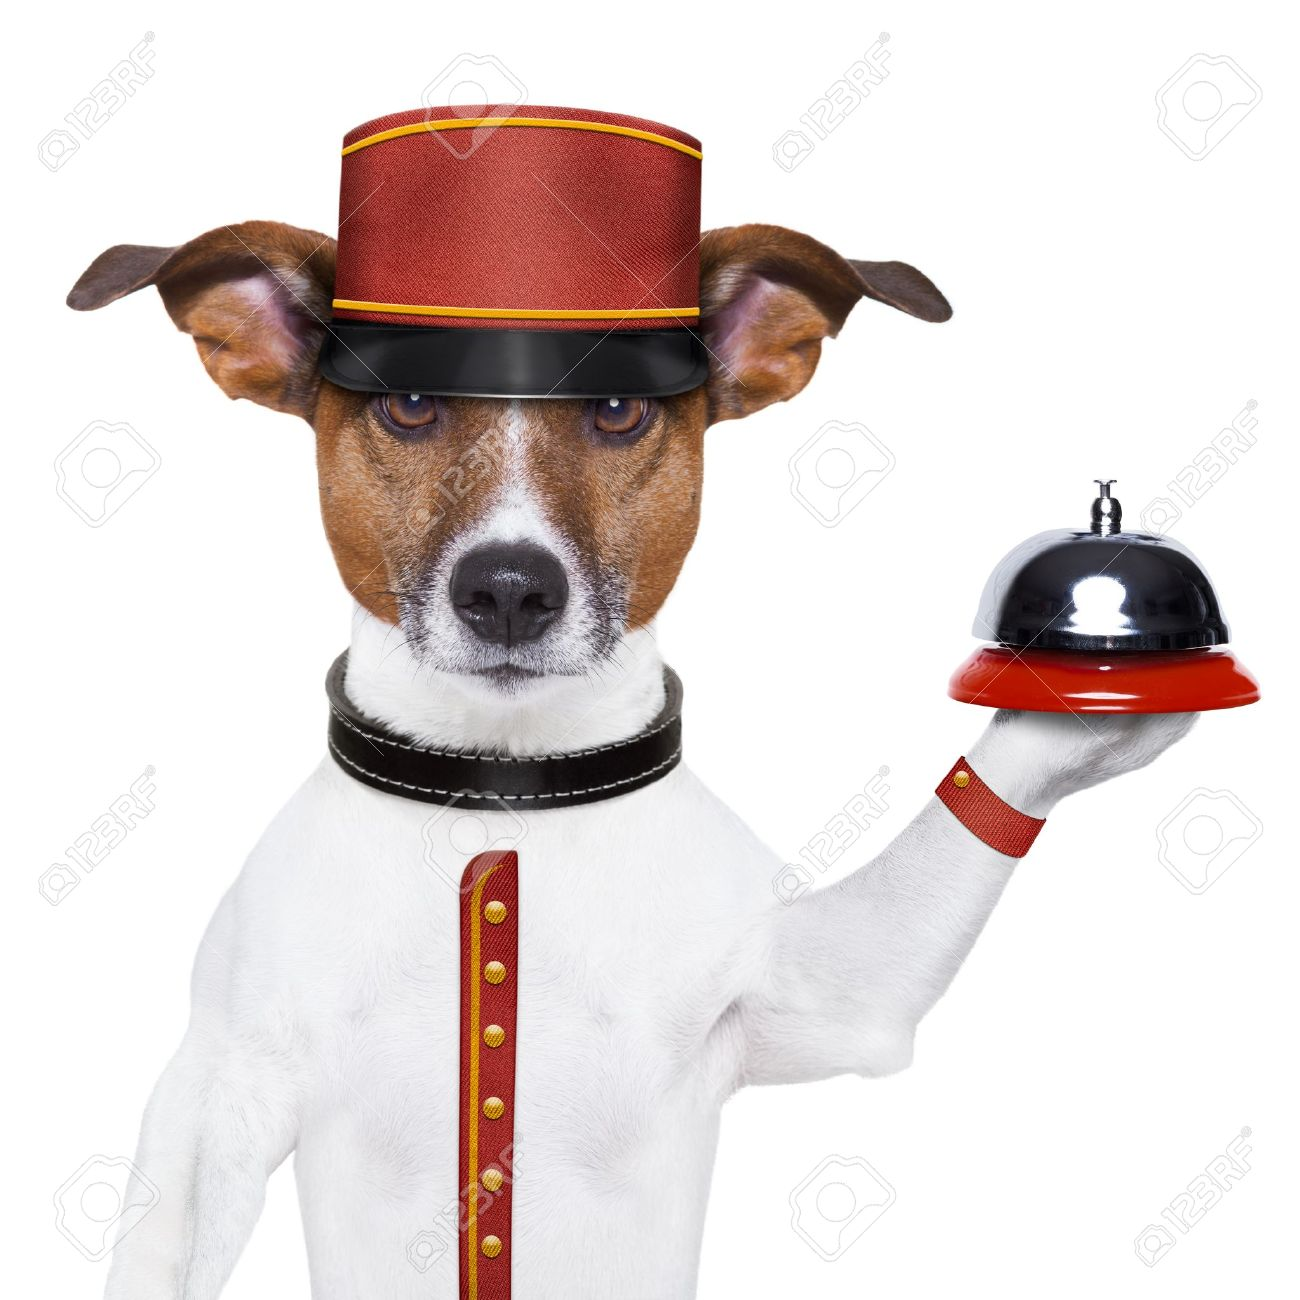 bellboy dog holding a bell with red hat Stock Photo - 17882472